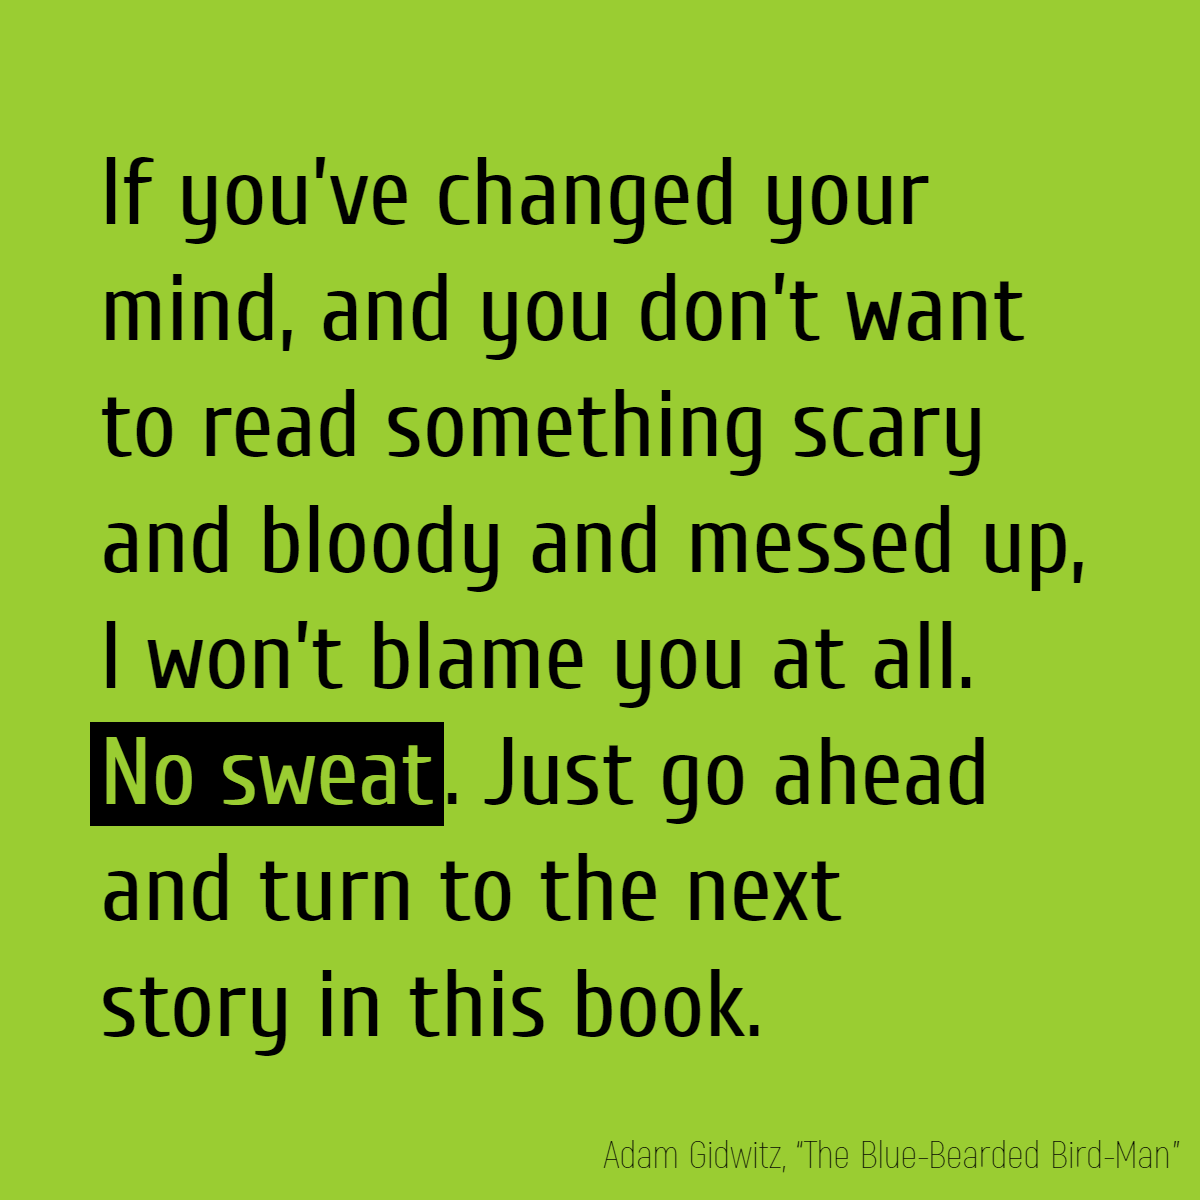 If you've changed your mind, and you don't want to read something scary and bloody and messed up, I won't blame you at all. **No sweat**. Just go ahead and turn to the next story in this book.